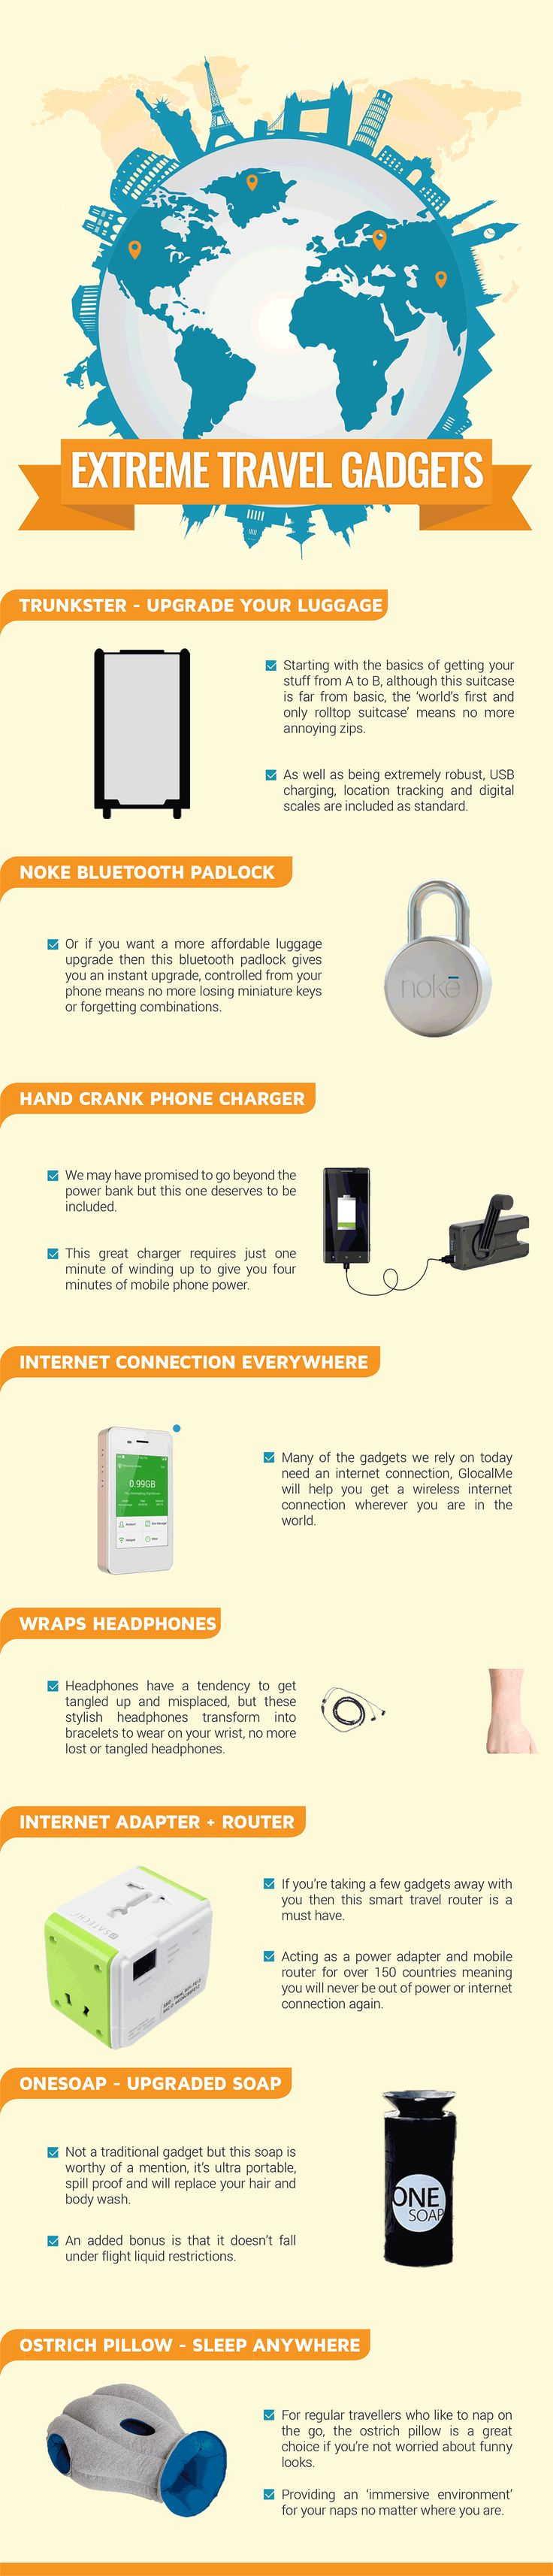 This infographic put together by De Vere Hotels details some great travel gadgets that will help us improve our travel